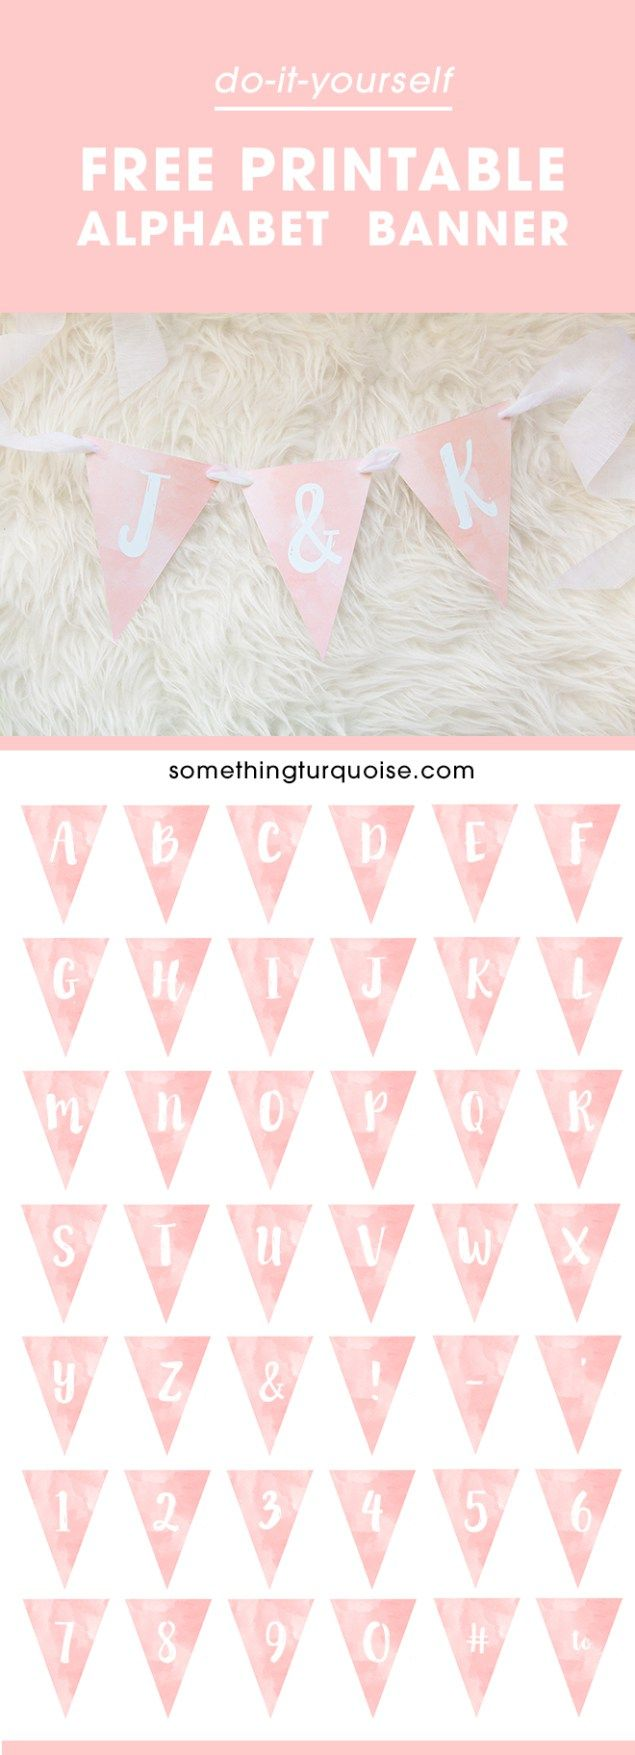 Adorable FREE printable watercolor alphabet banner you can make it say anything you want